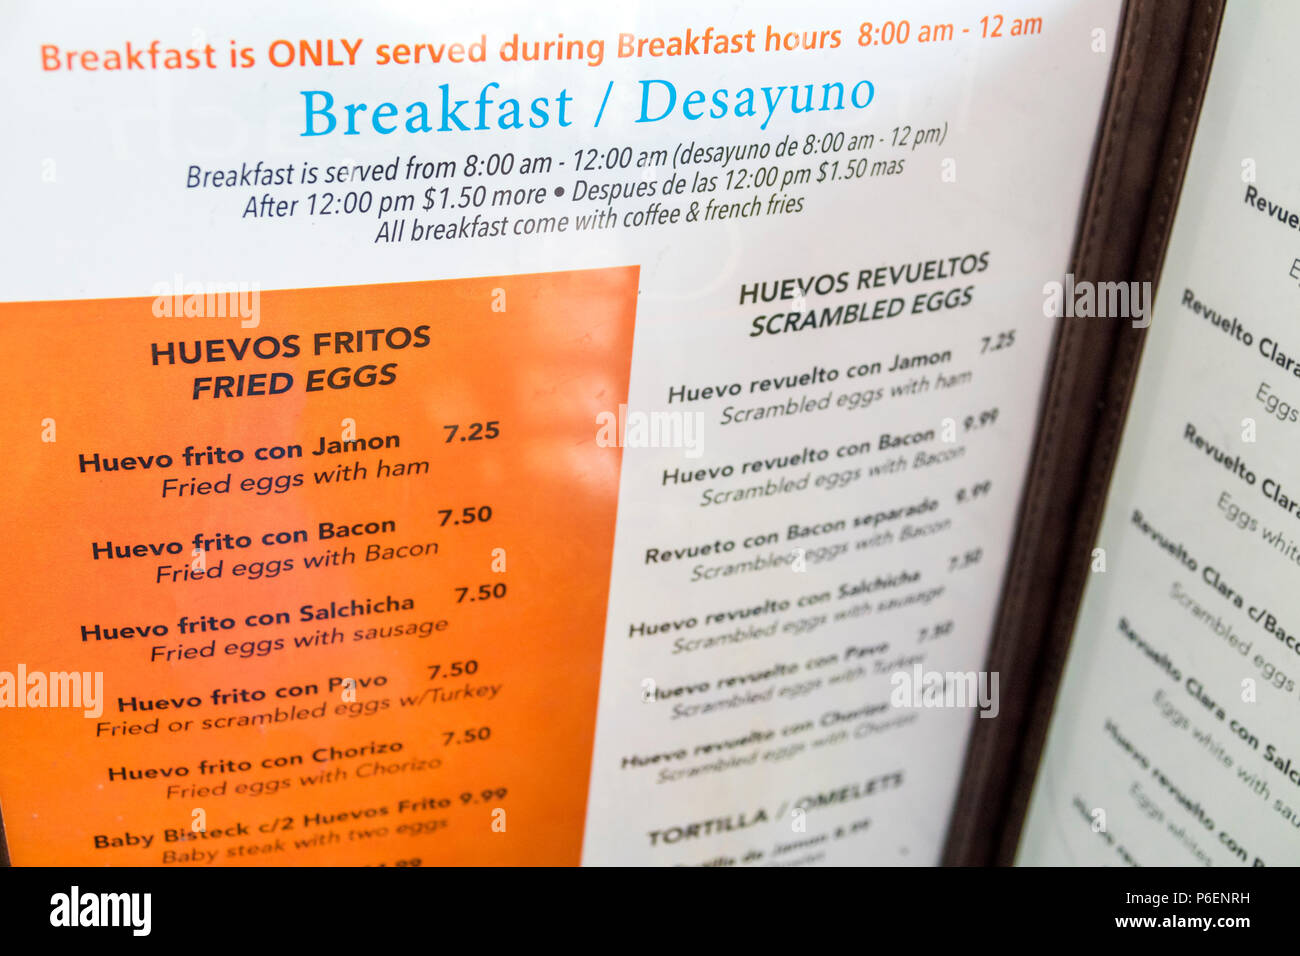 miami beach florida collins avenue tropical beach cafe breakfast